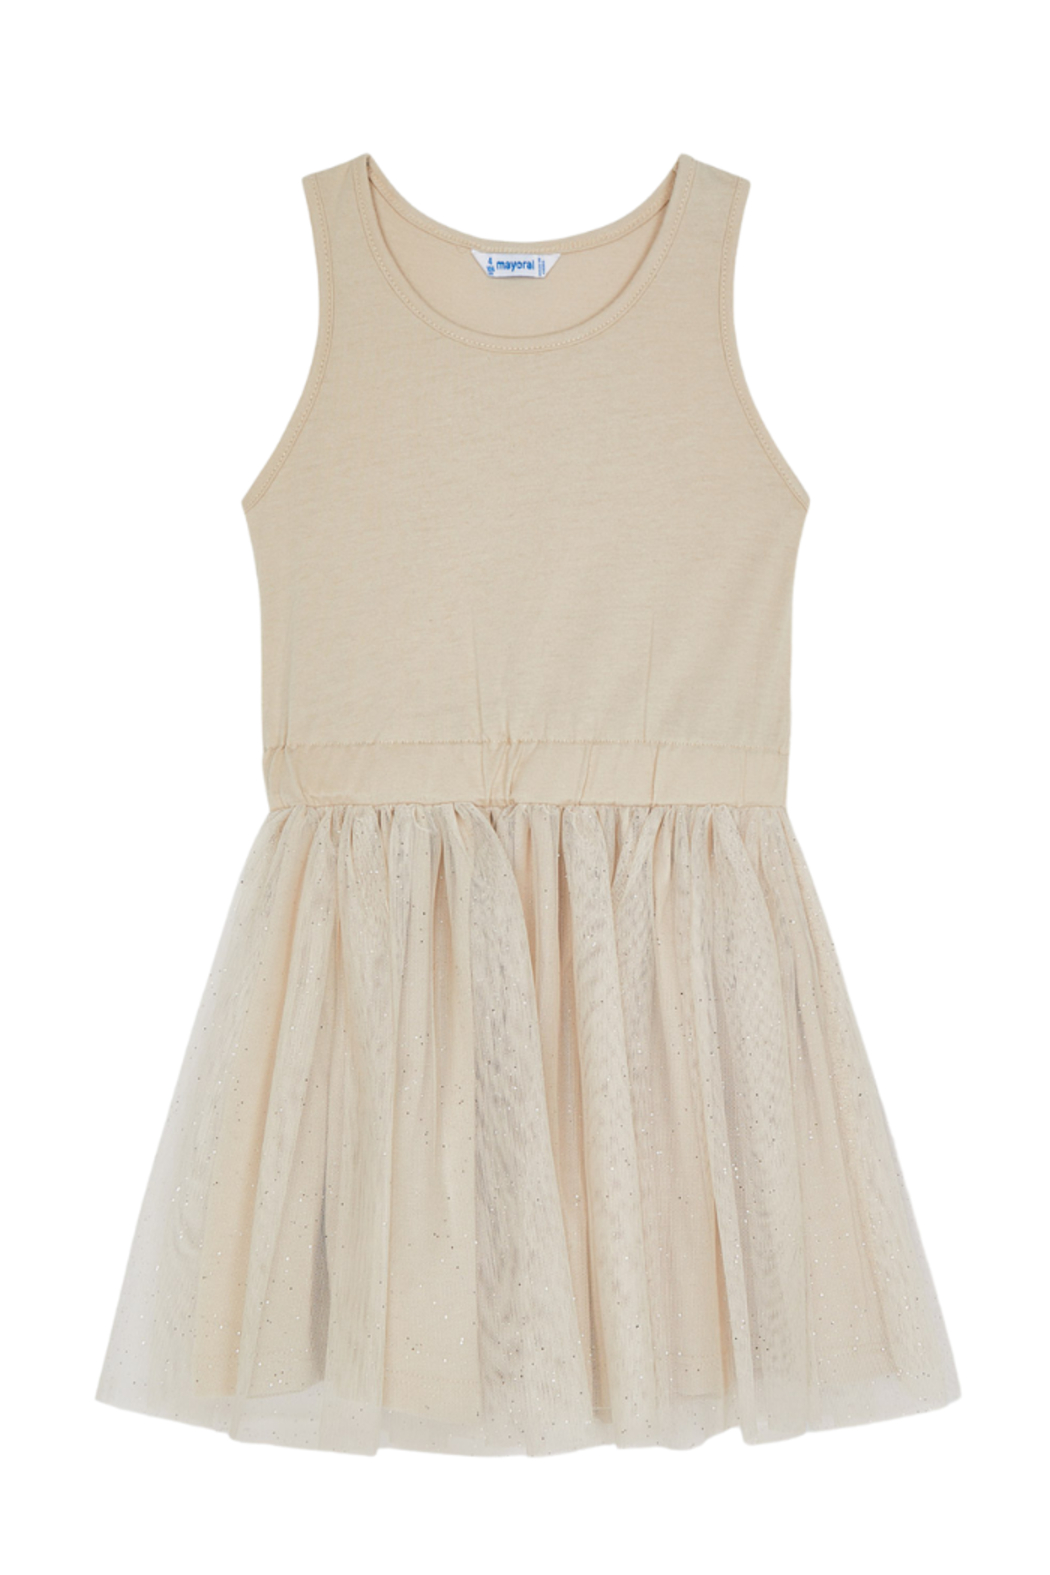 Mayoral 2 Piece Eliana Voile Dress - Side Cropped Image